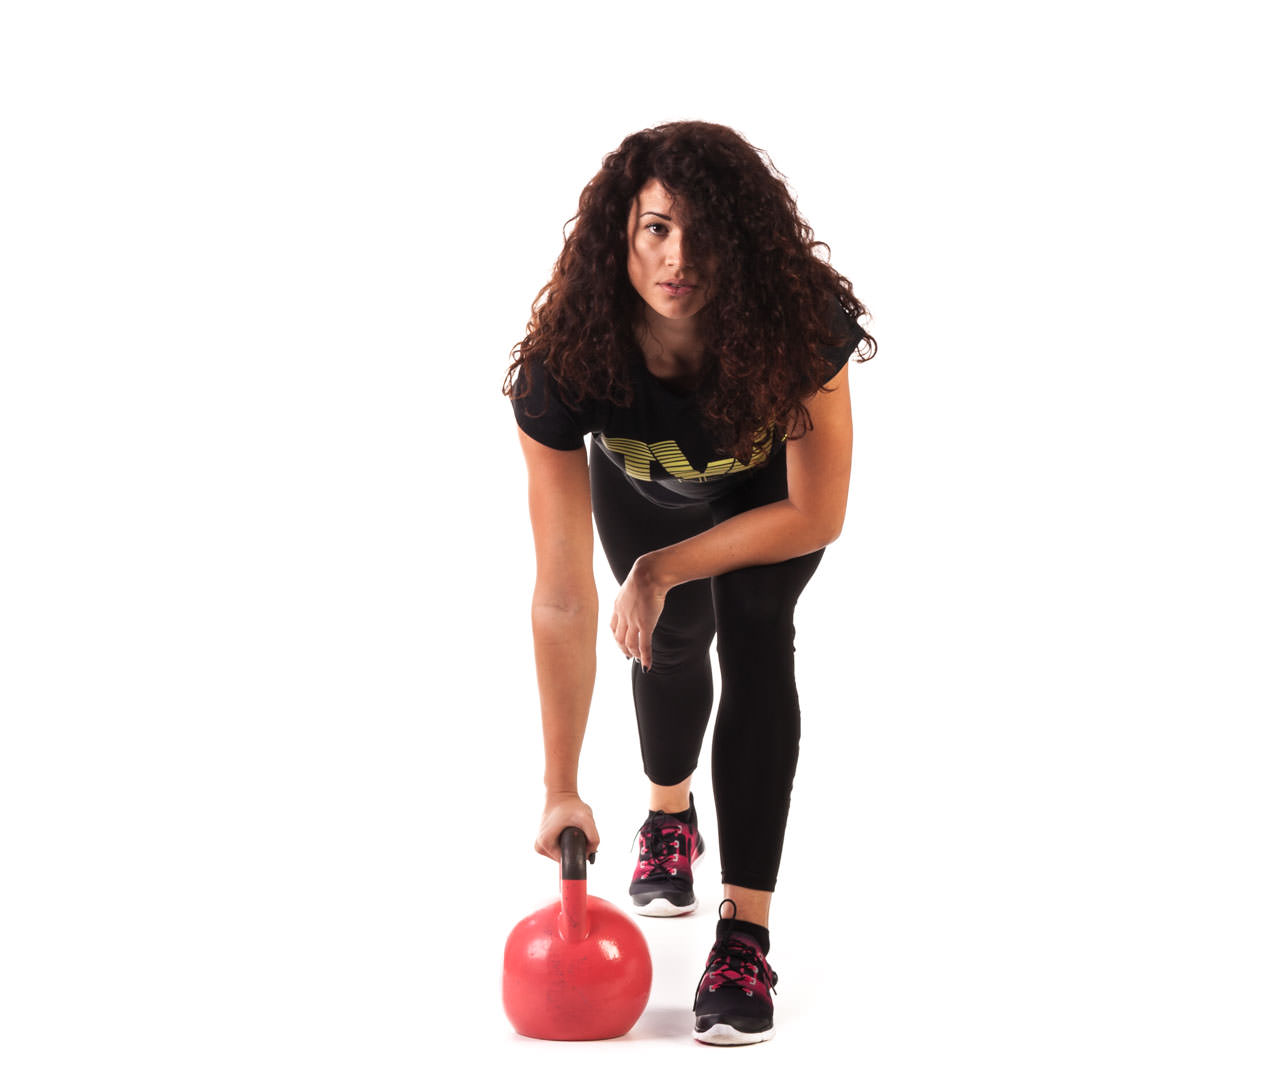 One-Arm Kettlebell Row frame #3